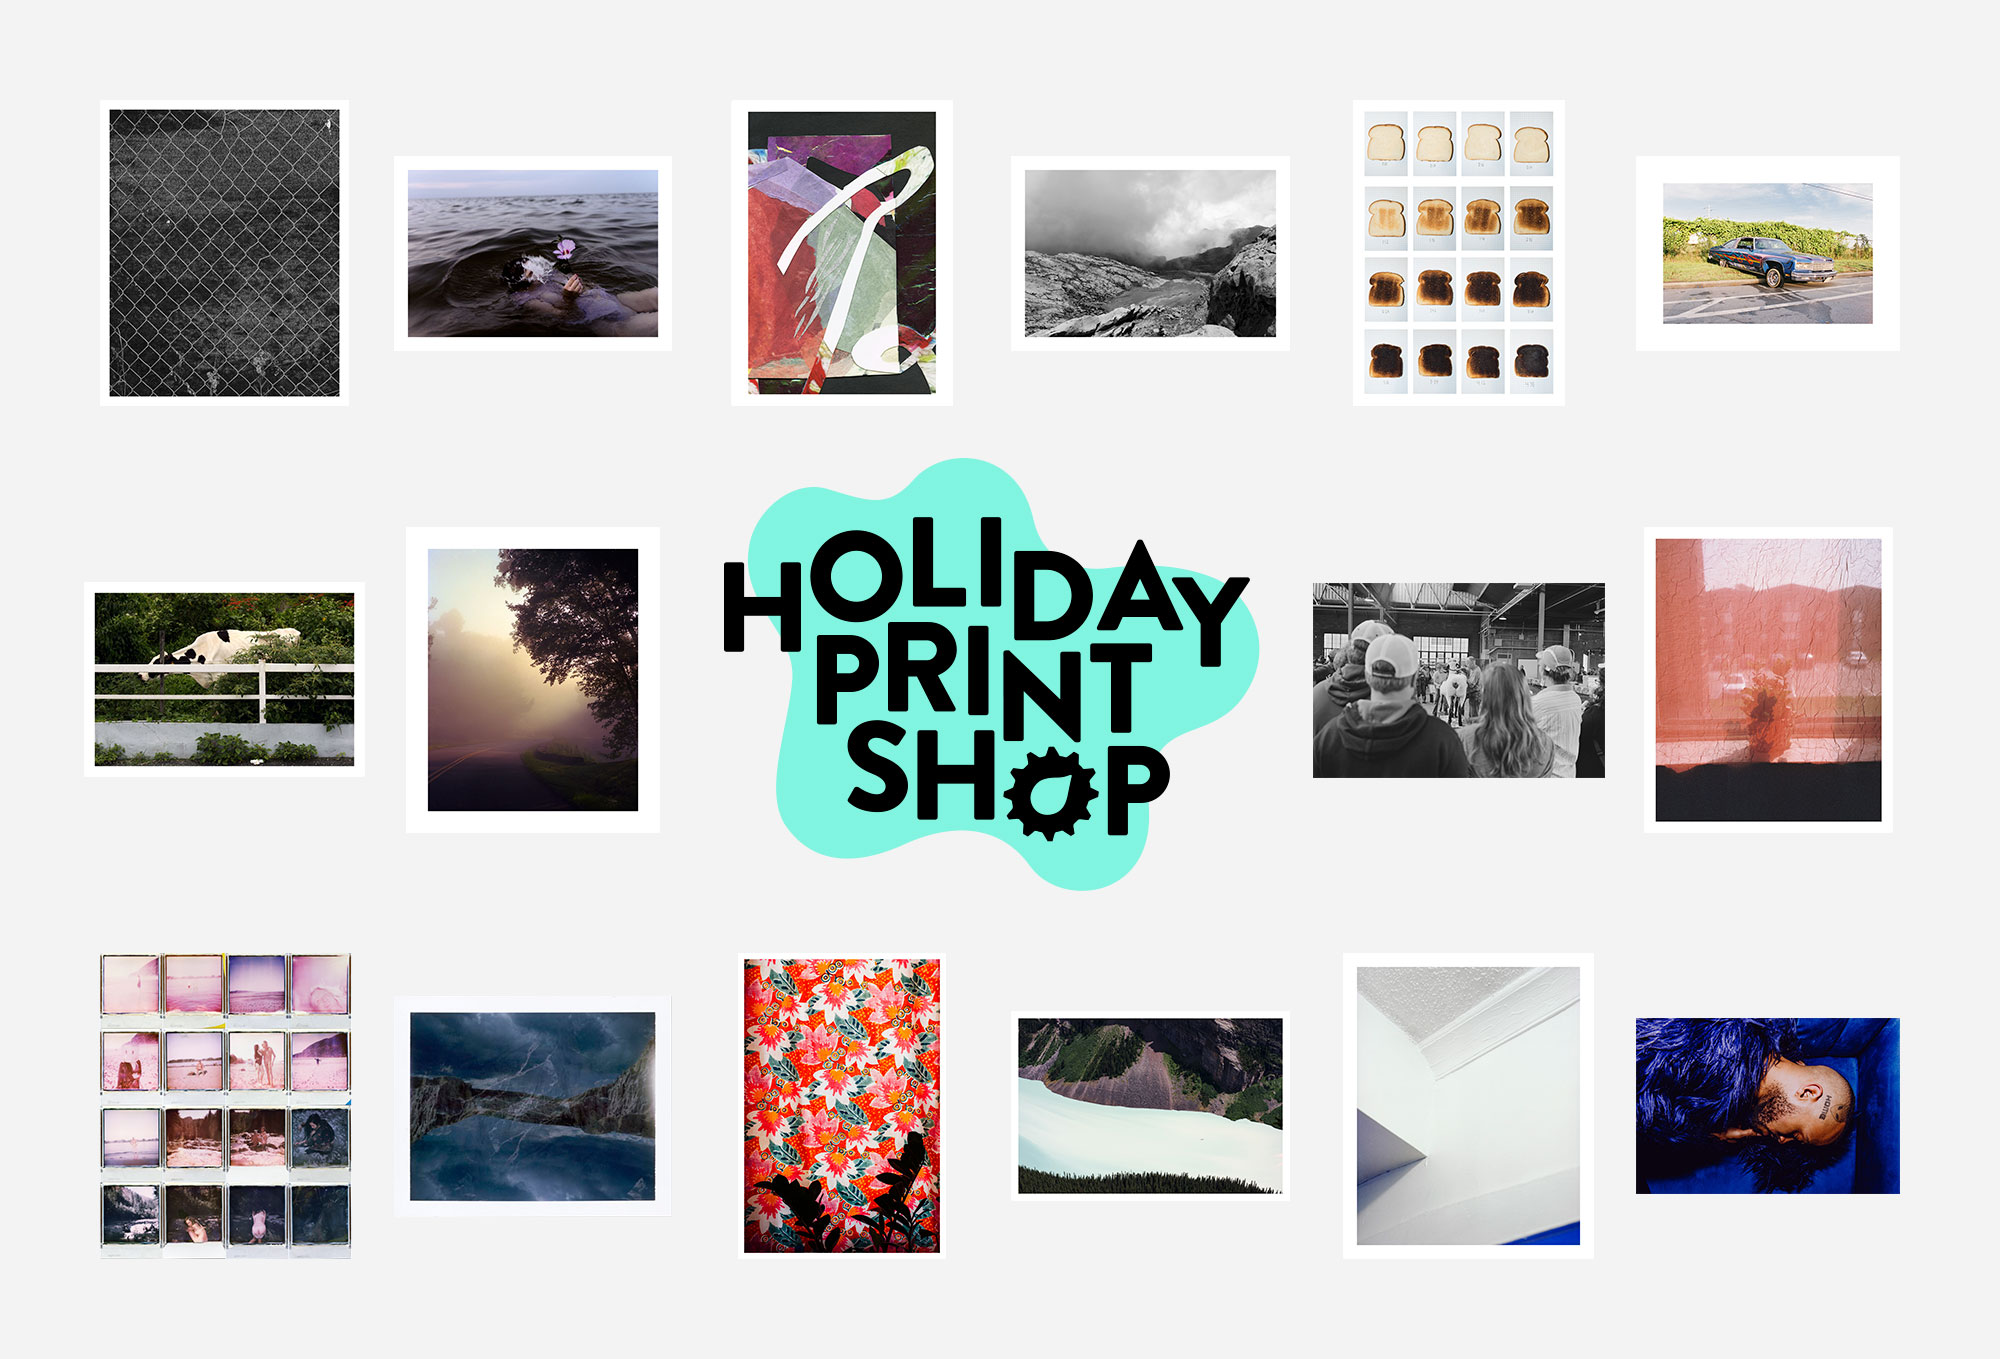 Homepage_HolidayPrintShop.jpg